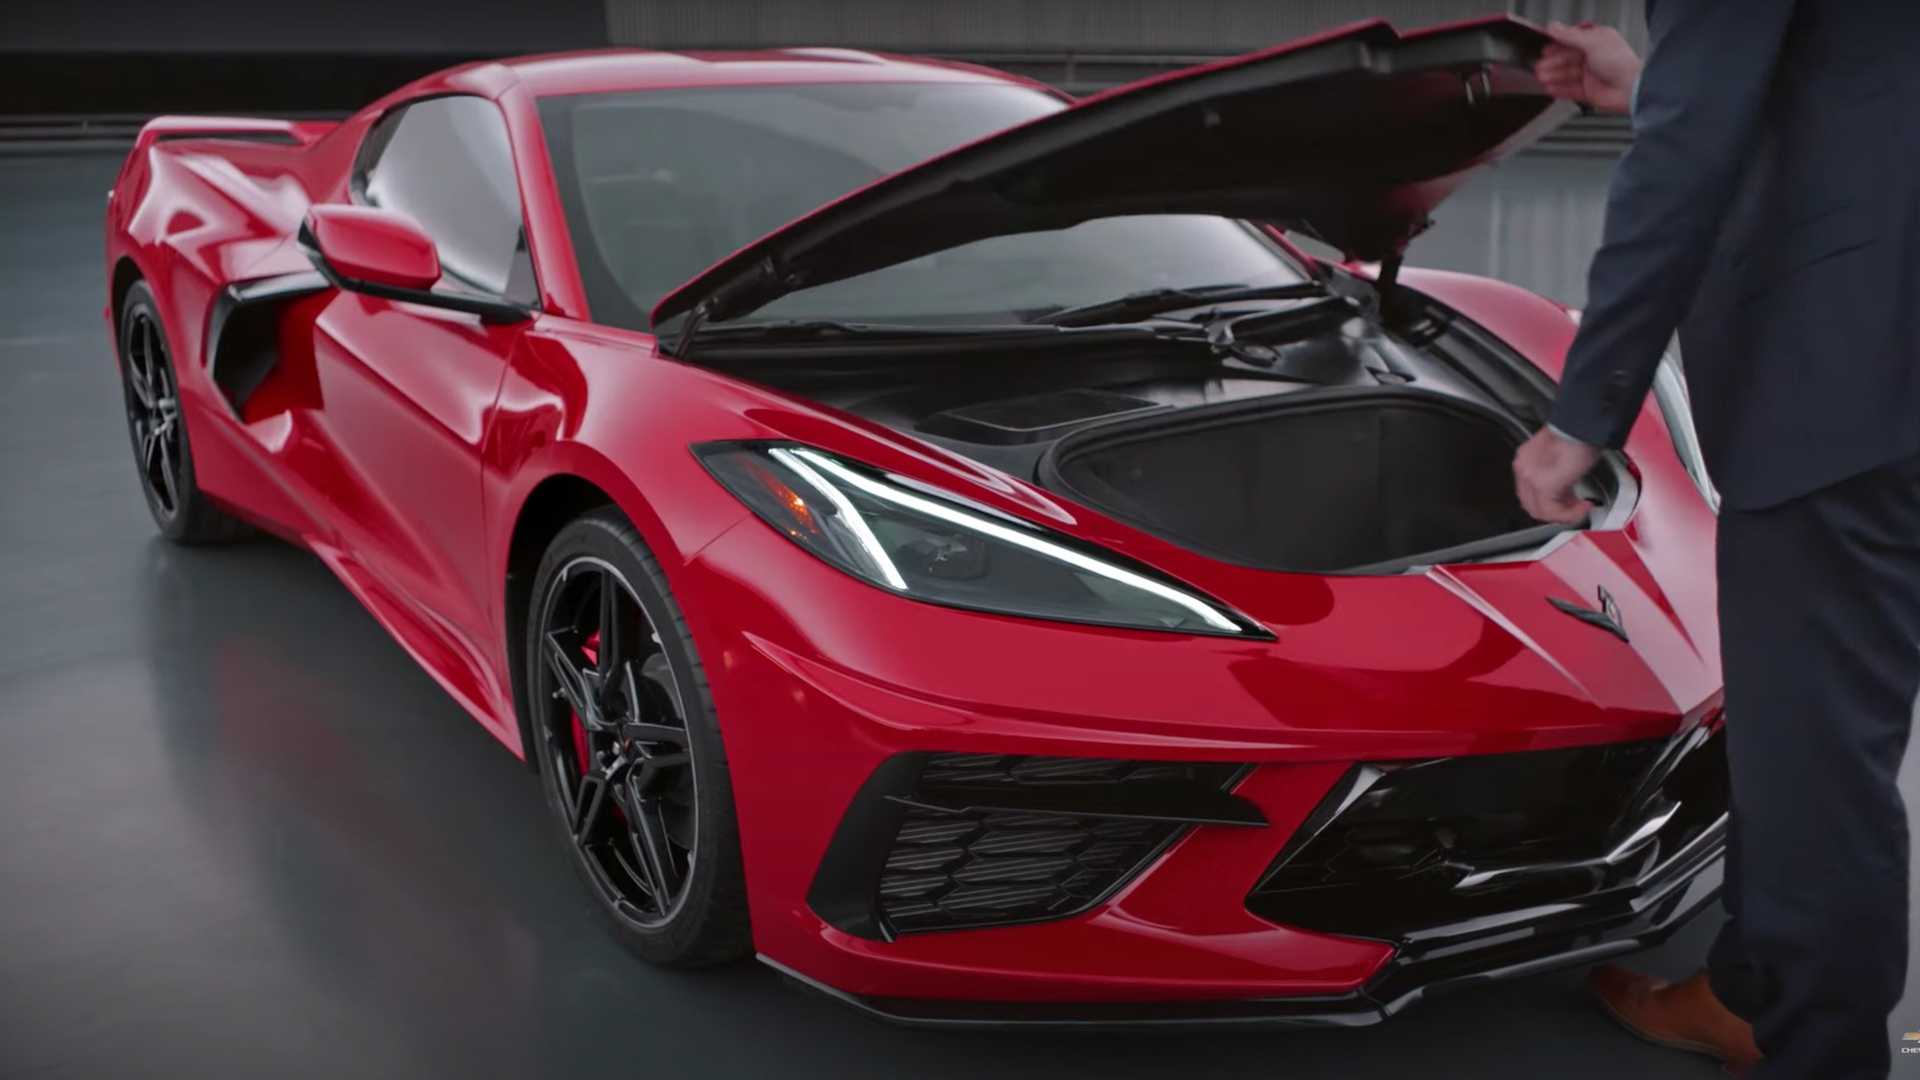 2020 Chevy Corvette Getting Complaints Over Frunk Opening While Driving